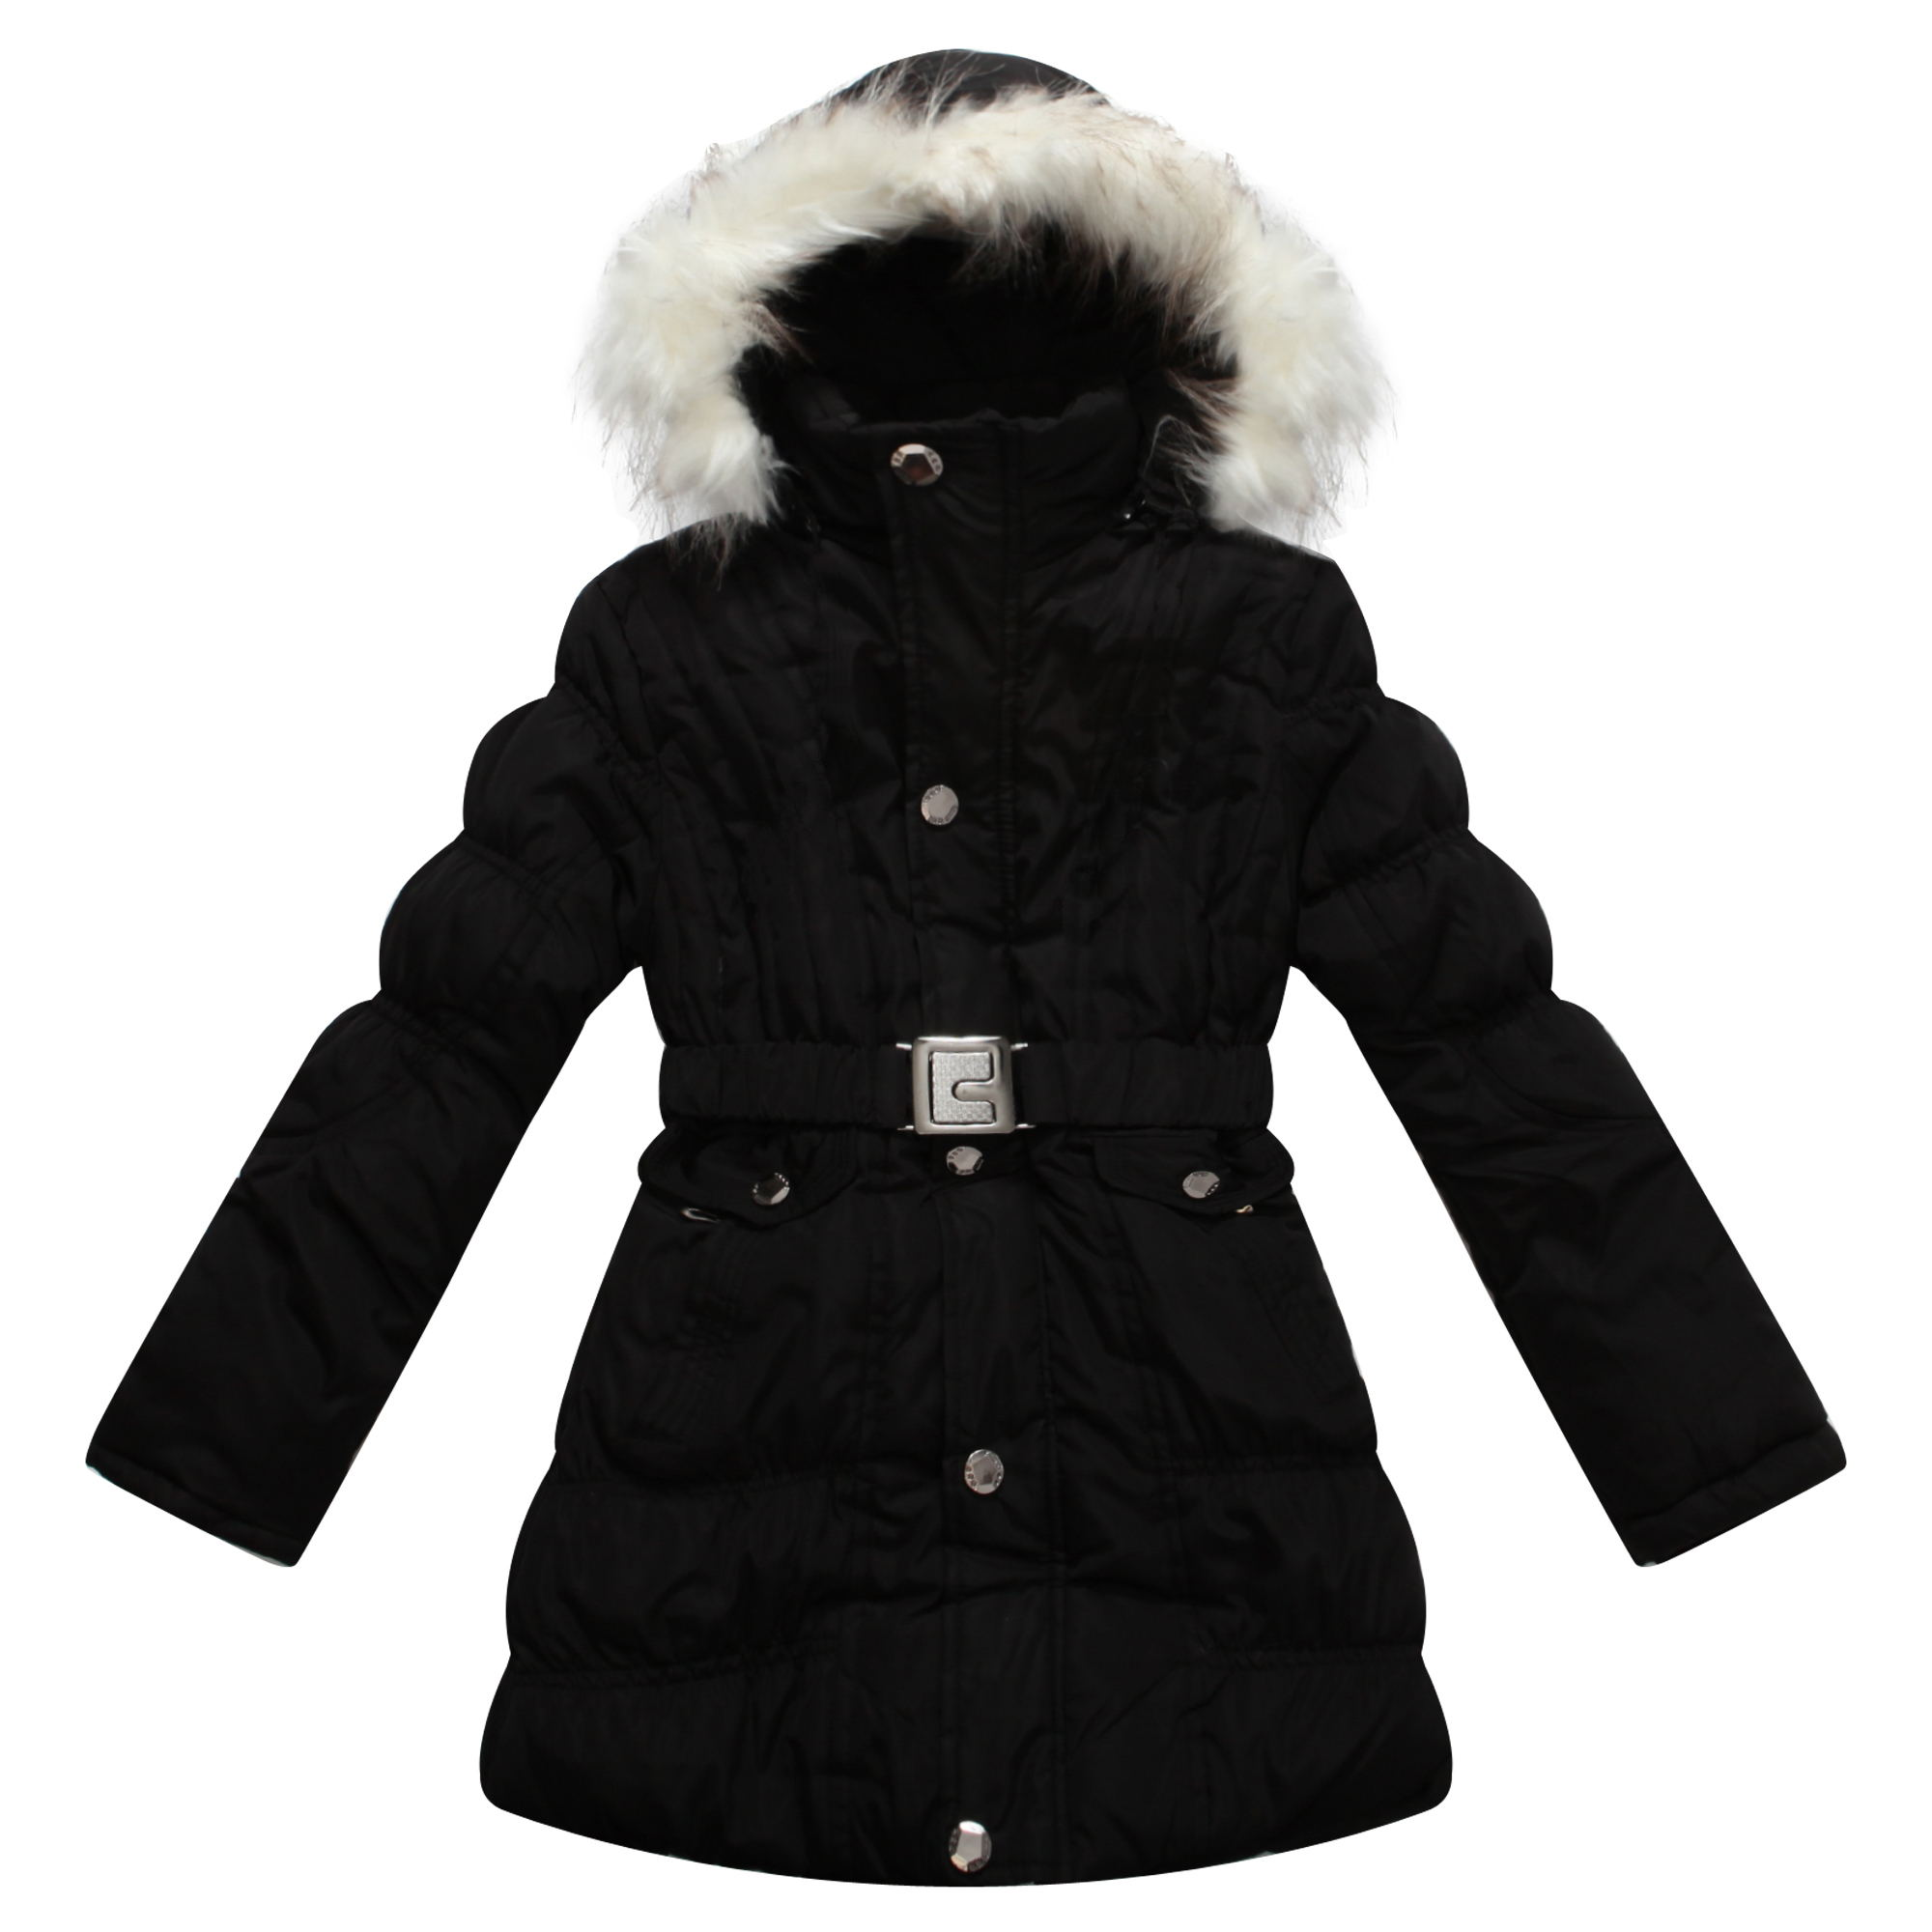 Richie House Girls' Padded Winter Jacket with Belt and Faux Fur Hood RH0784-D-7/8